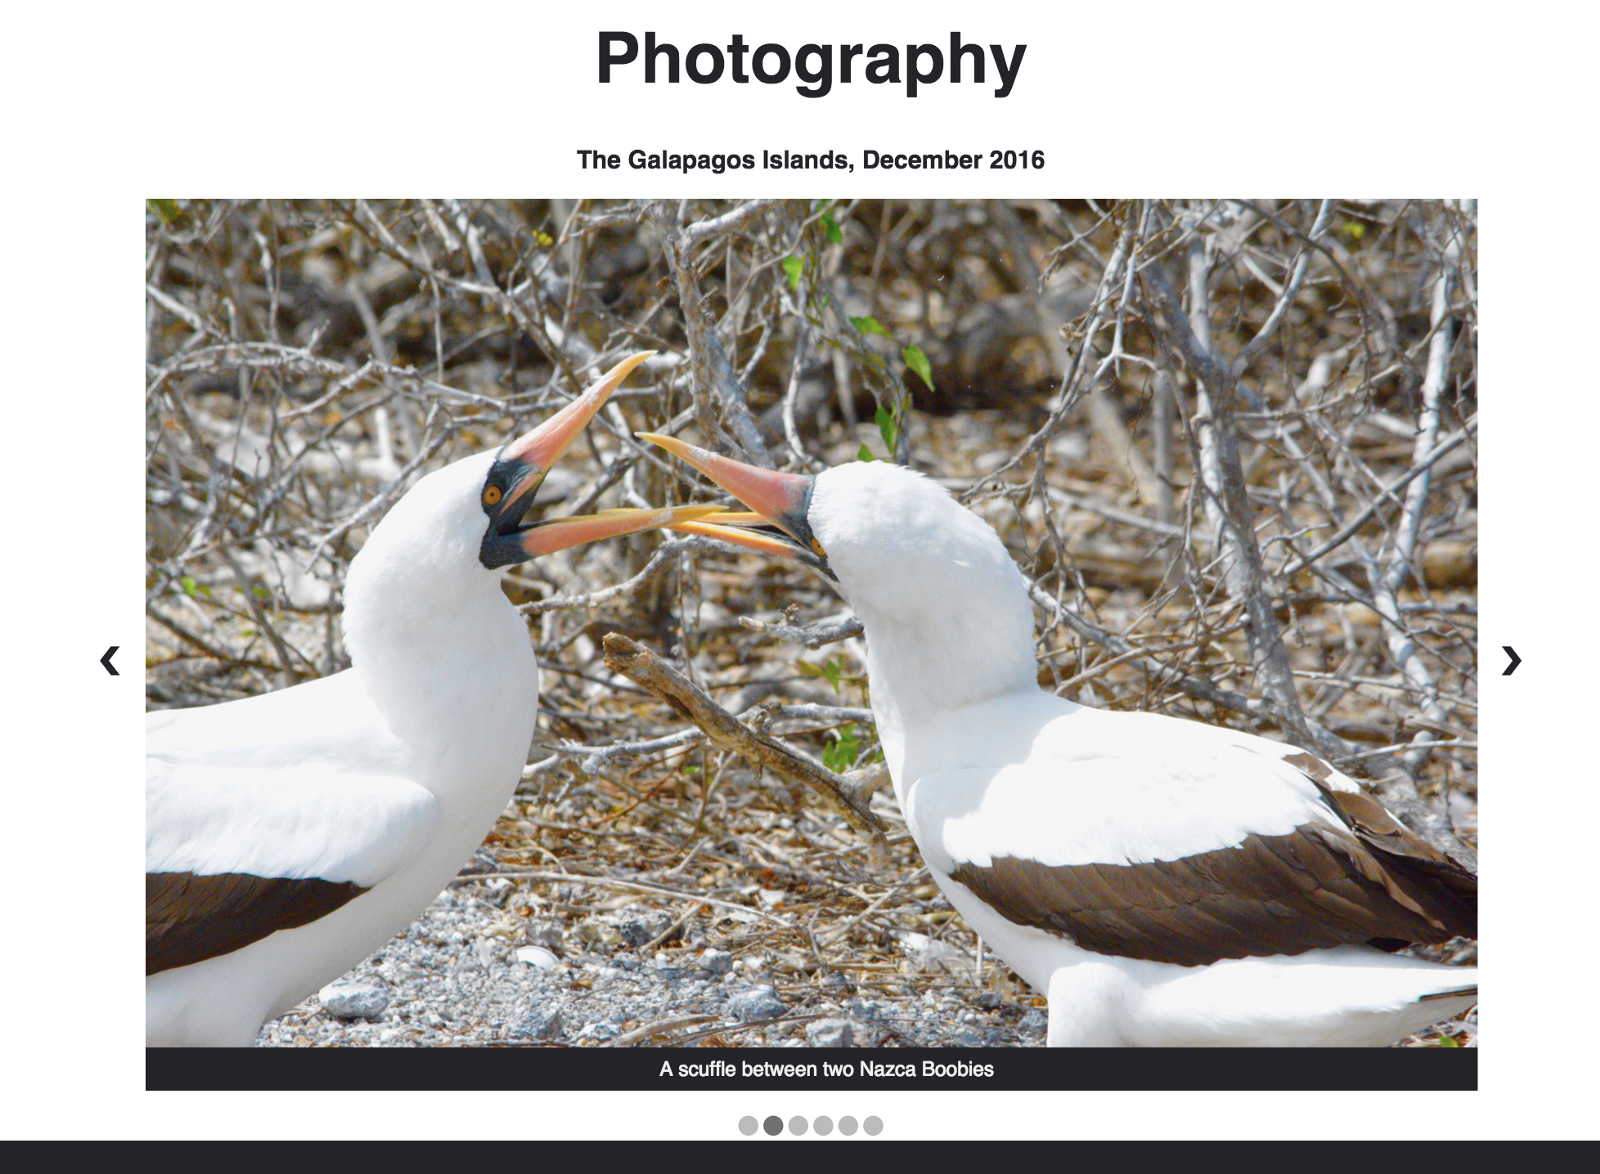 Slide Show Of Some Of My Bird Photos >> Make A Slideshow With Automatic And Manual Controls Using Html Css